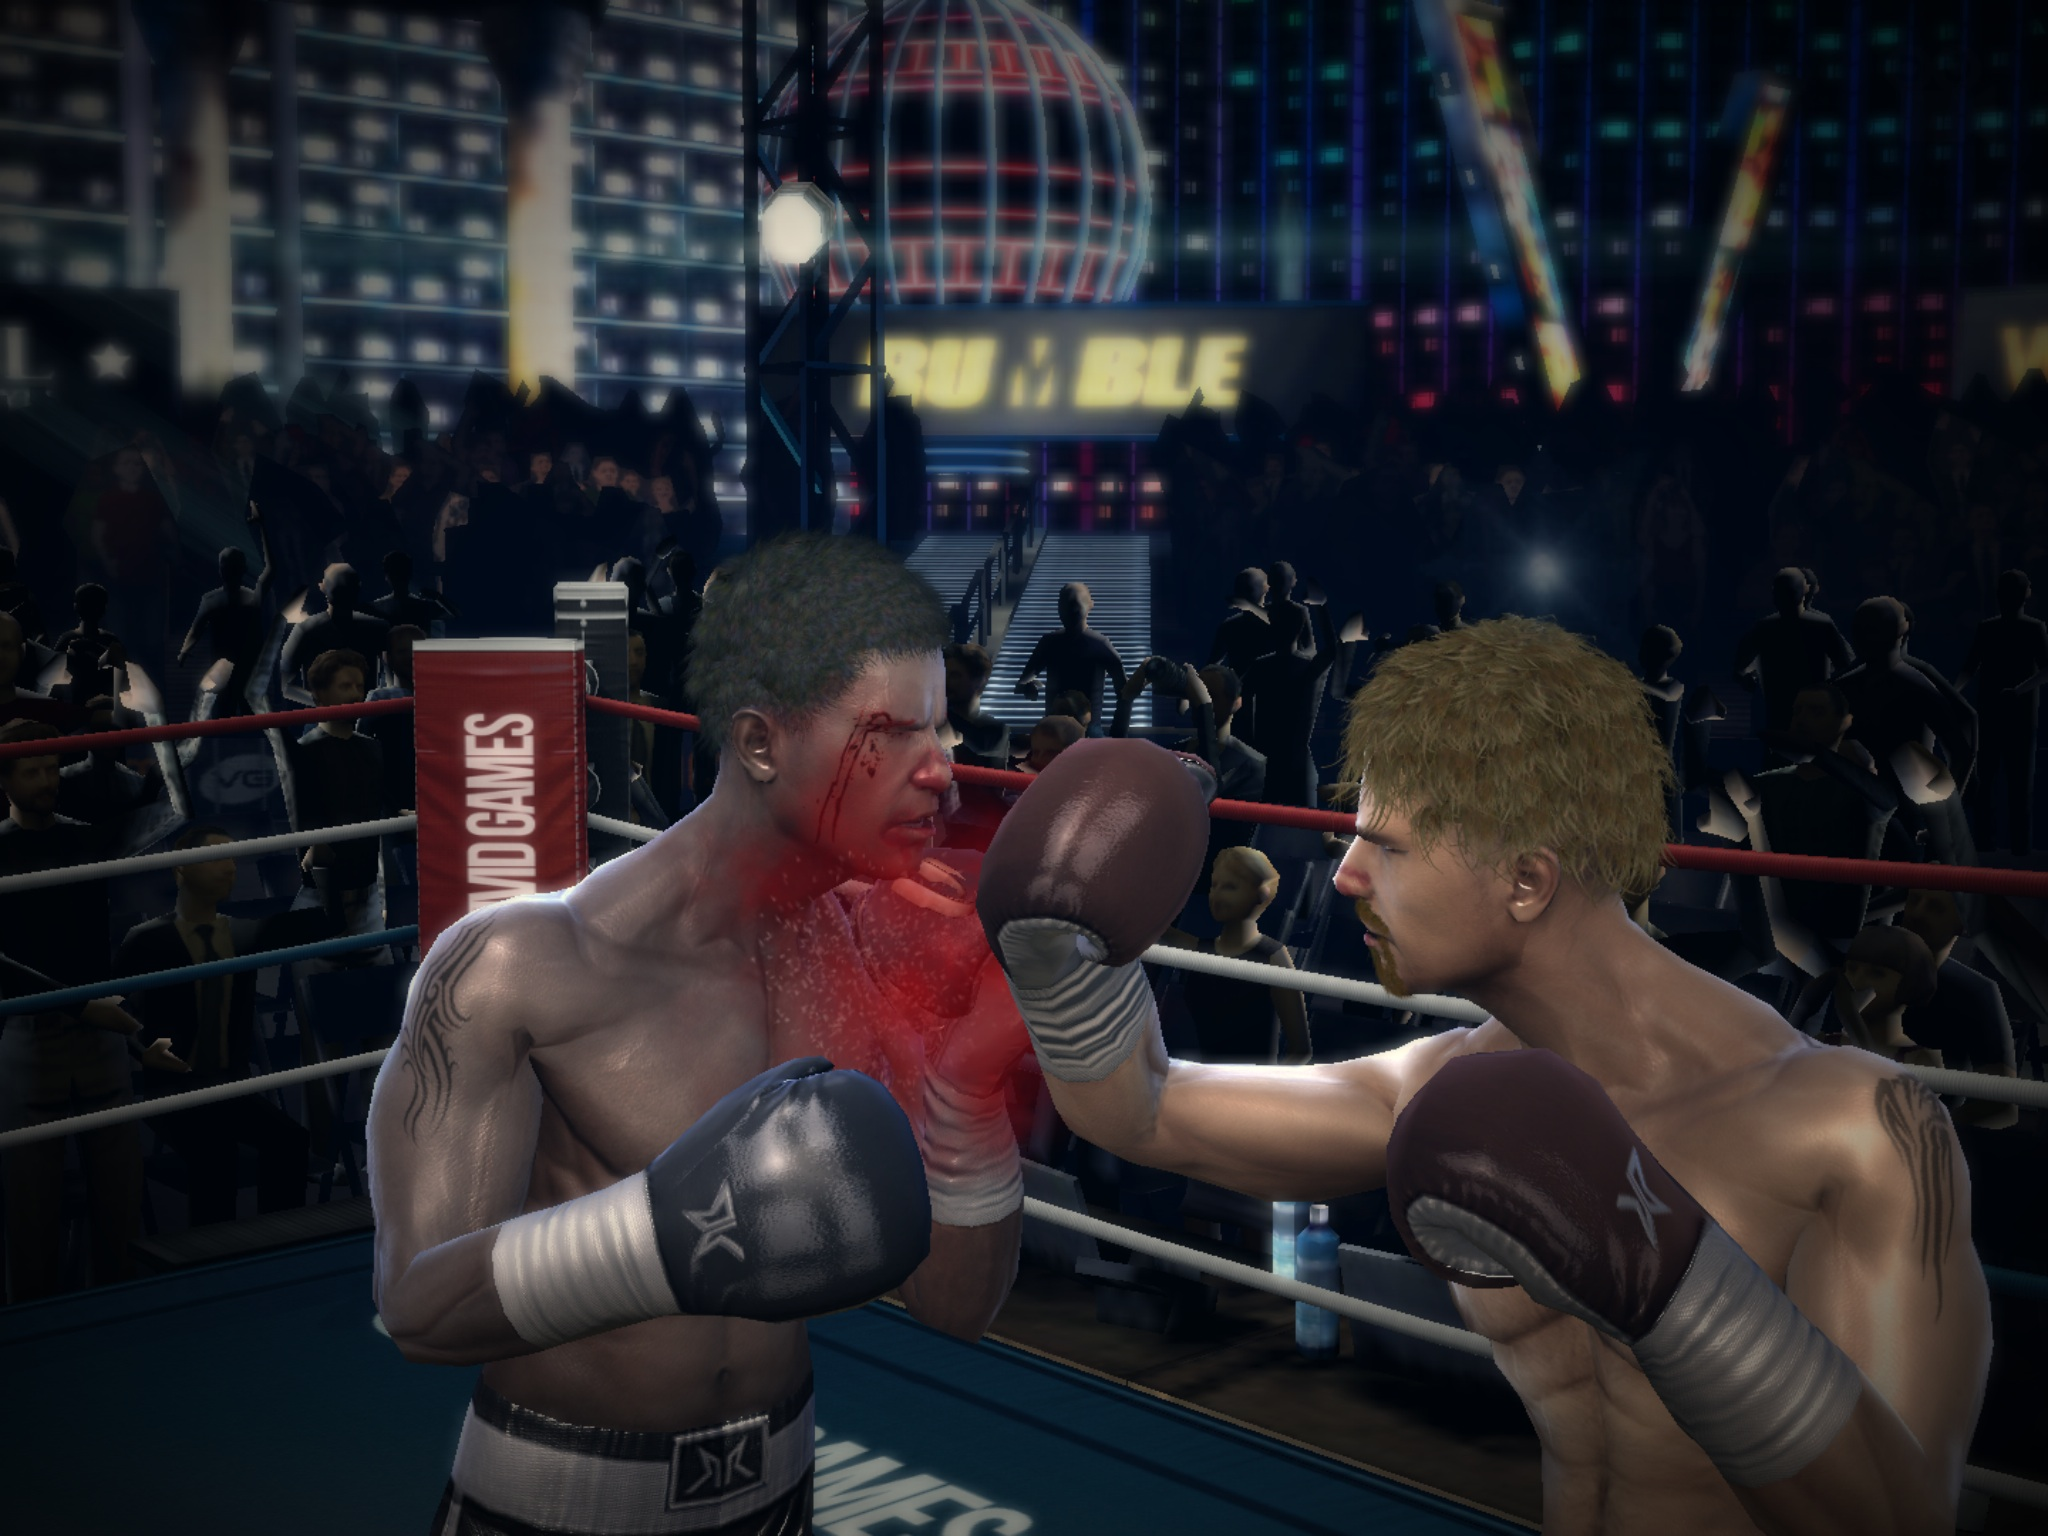 Vivid Games updates Real Boxing for iOS and Android with controller support